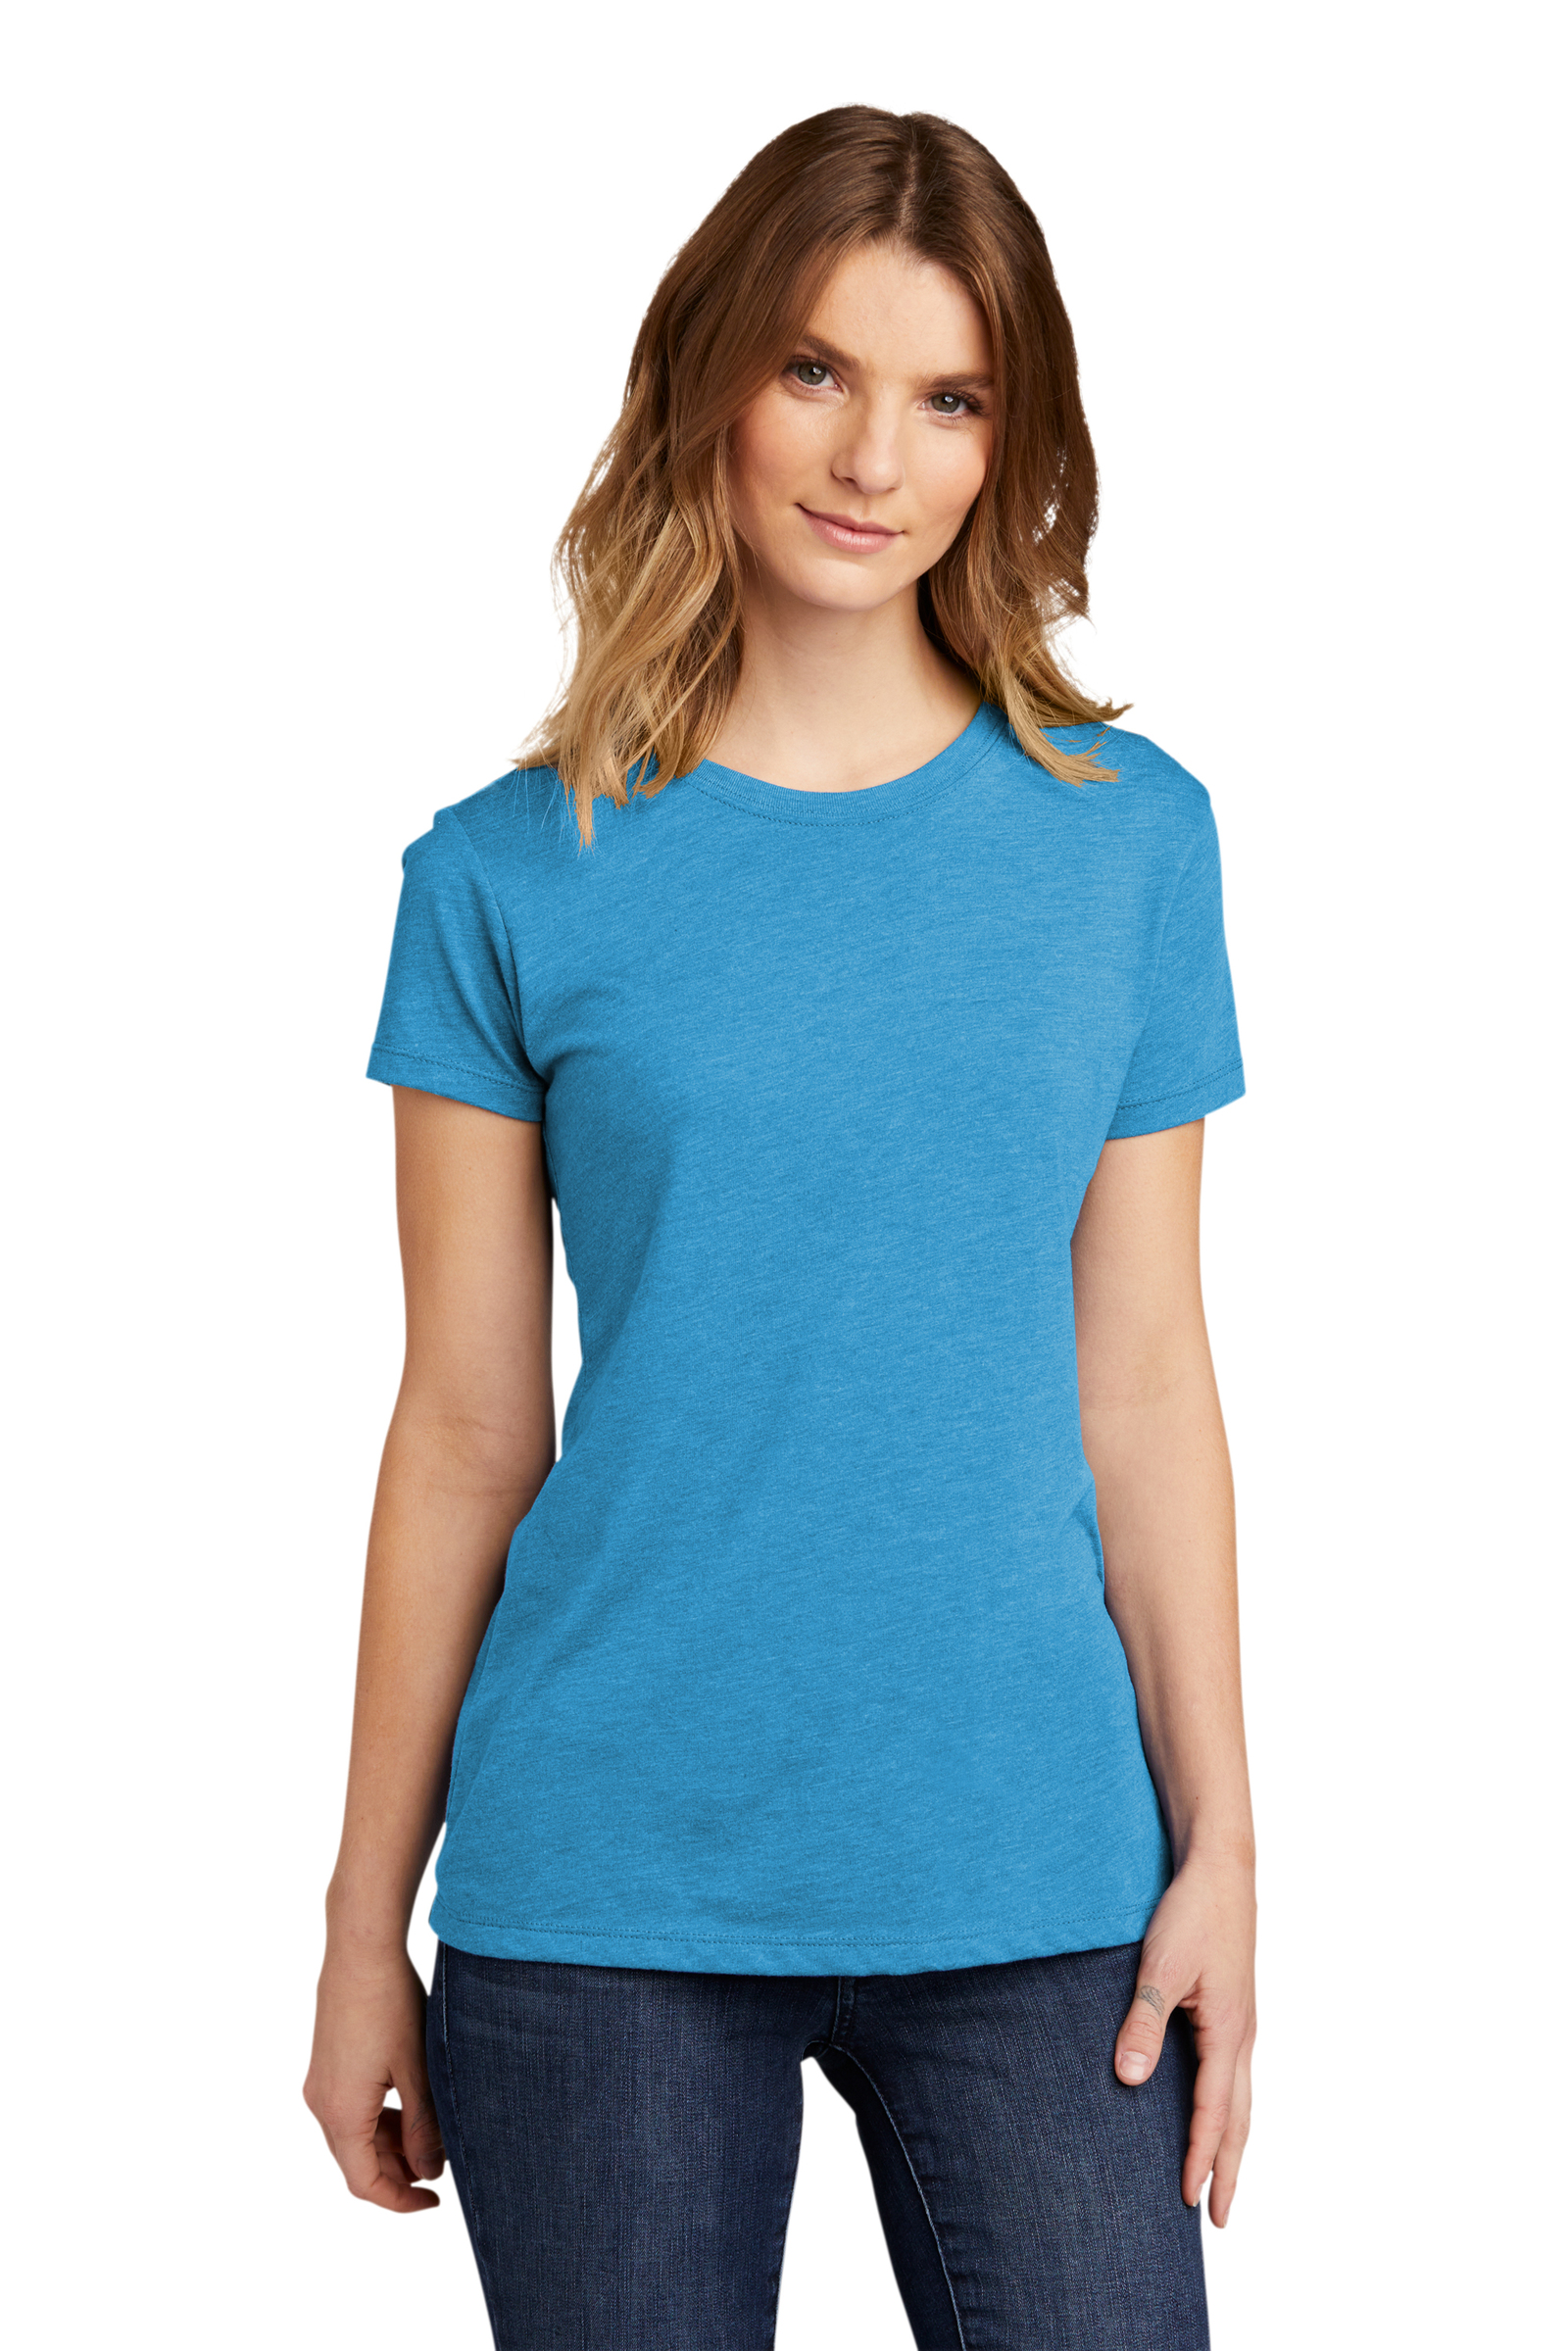 Next Level Embroidered Women's Tri-Blend Crew